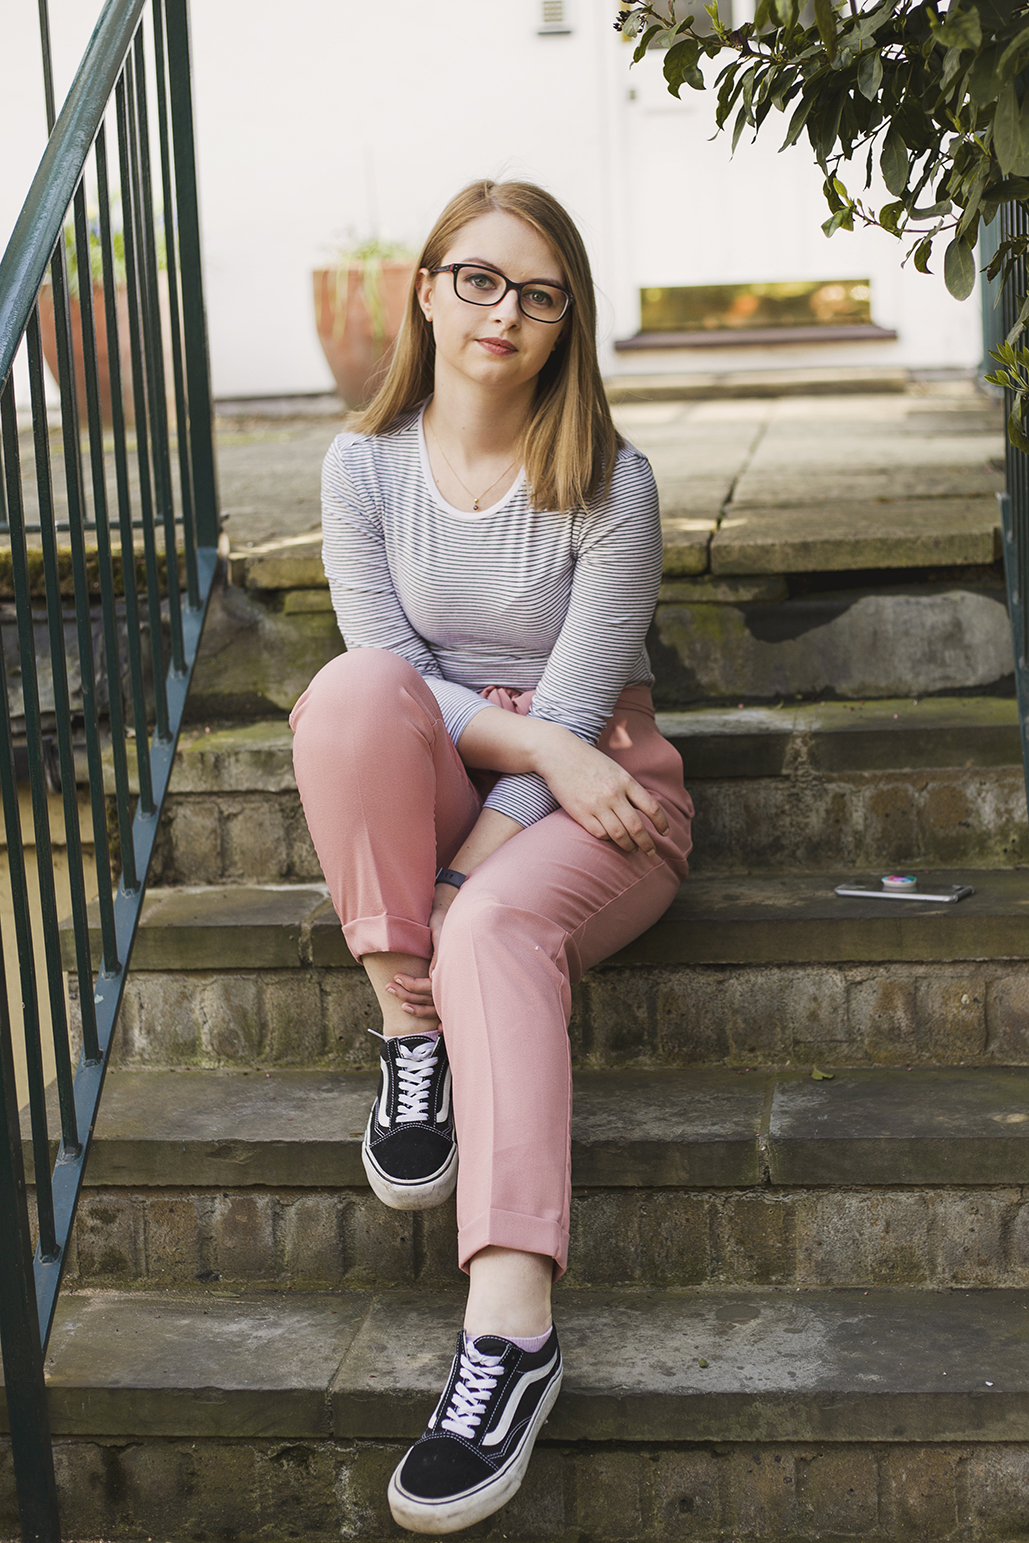 Girl sitting on steps wearing pink trousers and a predominently white striped top.